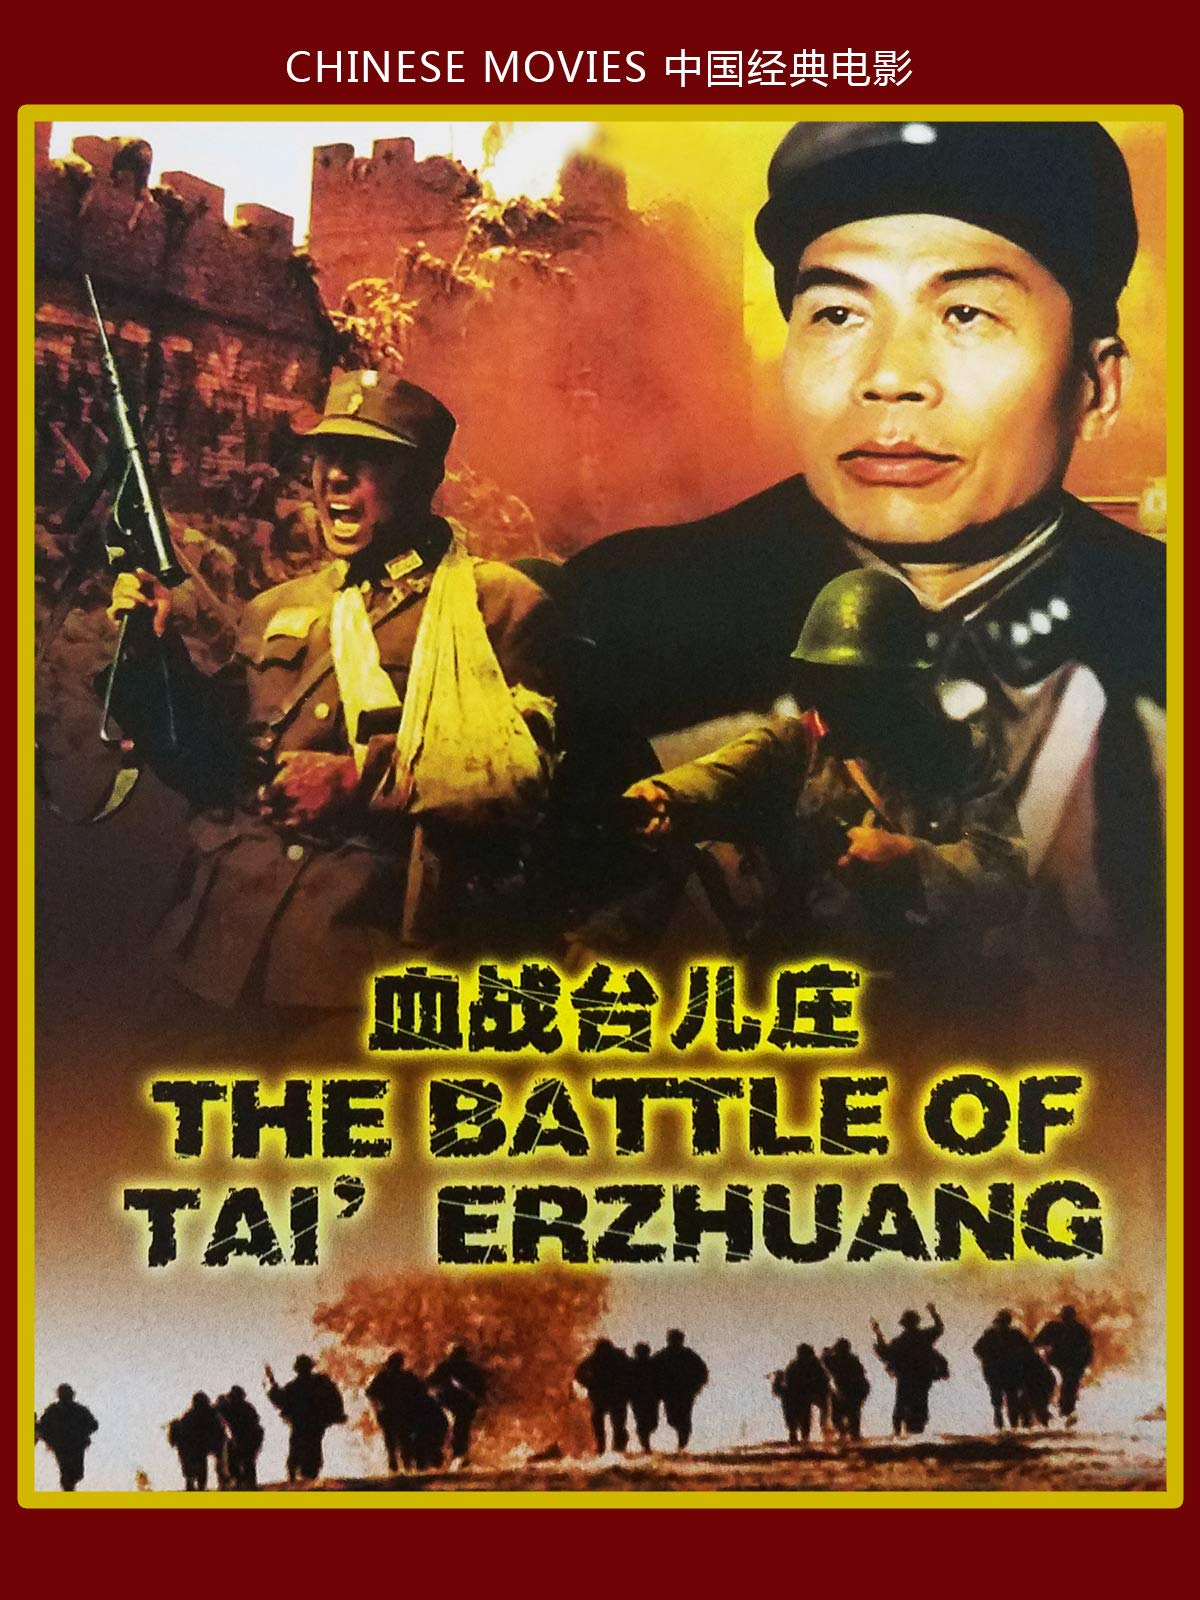 Chinese movies-The battle of Tai'ErZhuang-2 on Amazon Prime Video UK